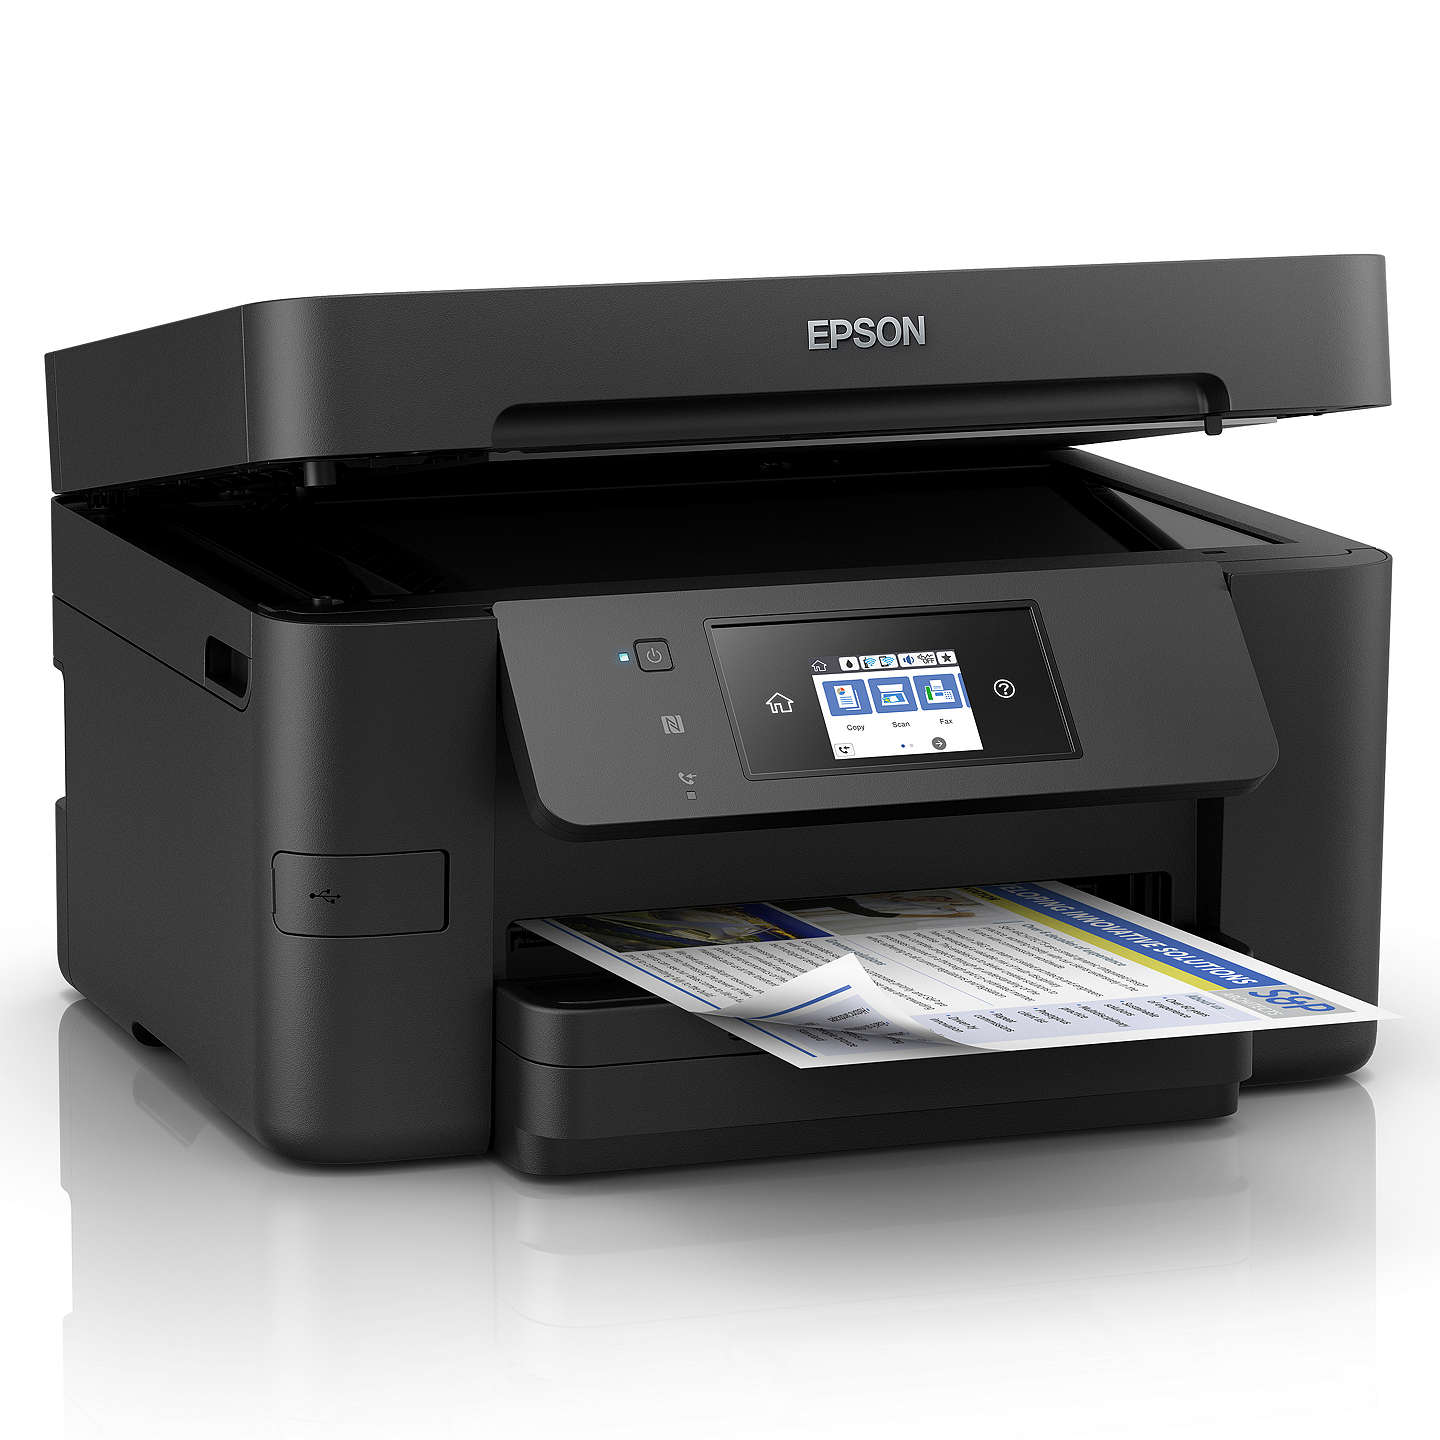 BuyEpson WorkForce WF-3720 All-In-One Wireless Printer, Black Online at johnlewis.com